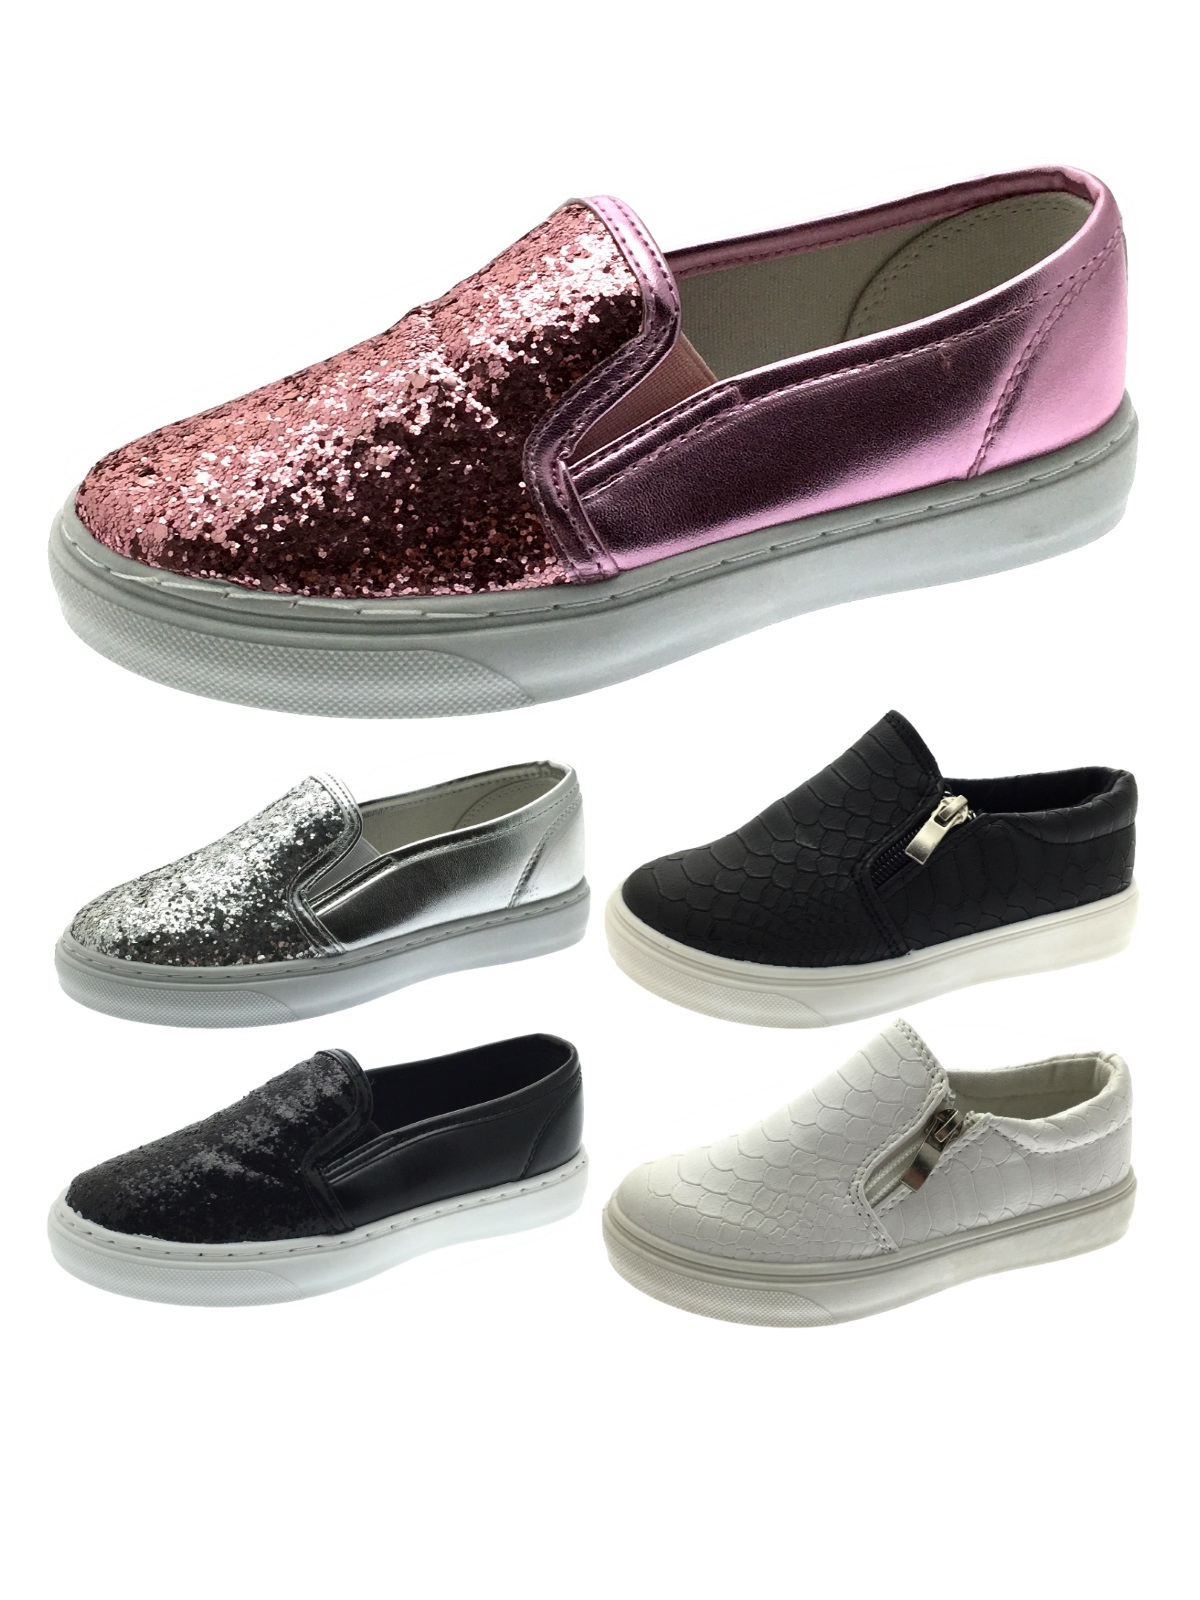 9698281919ac Girls Glitter Skate Pumps Kids Slip On Trainers Flat Plimsolls Shoes With  Zips